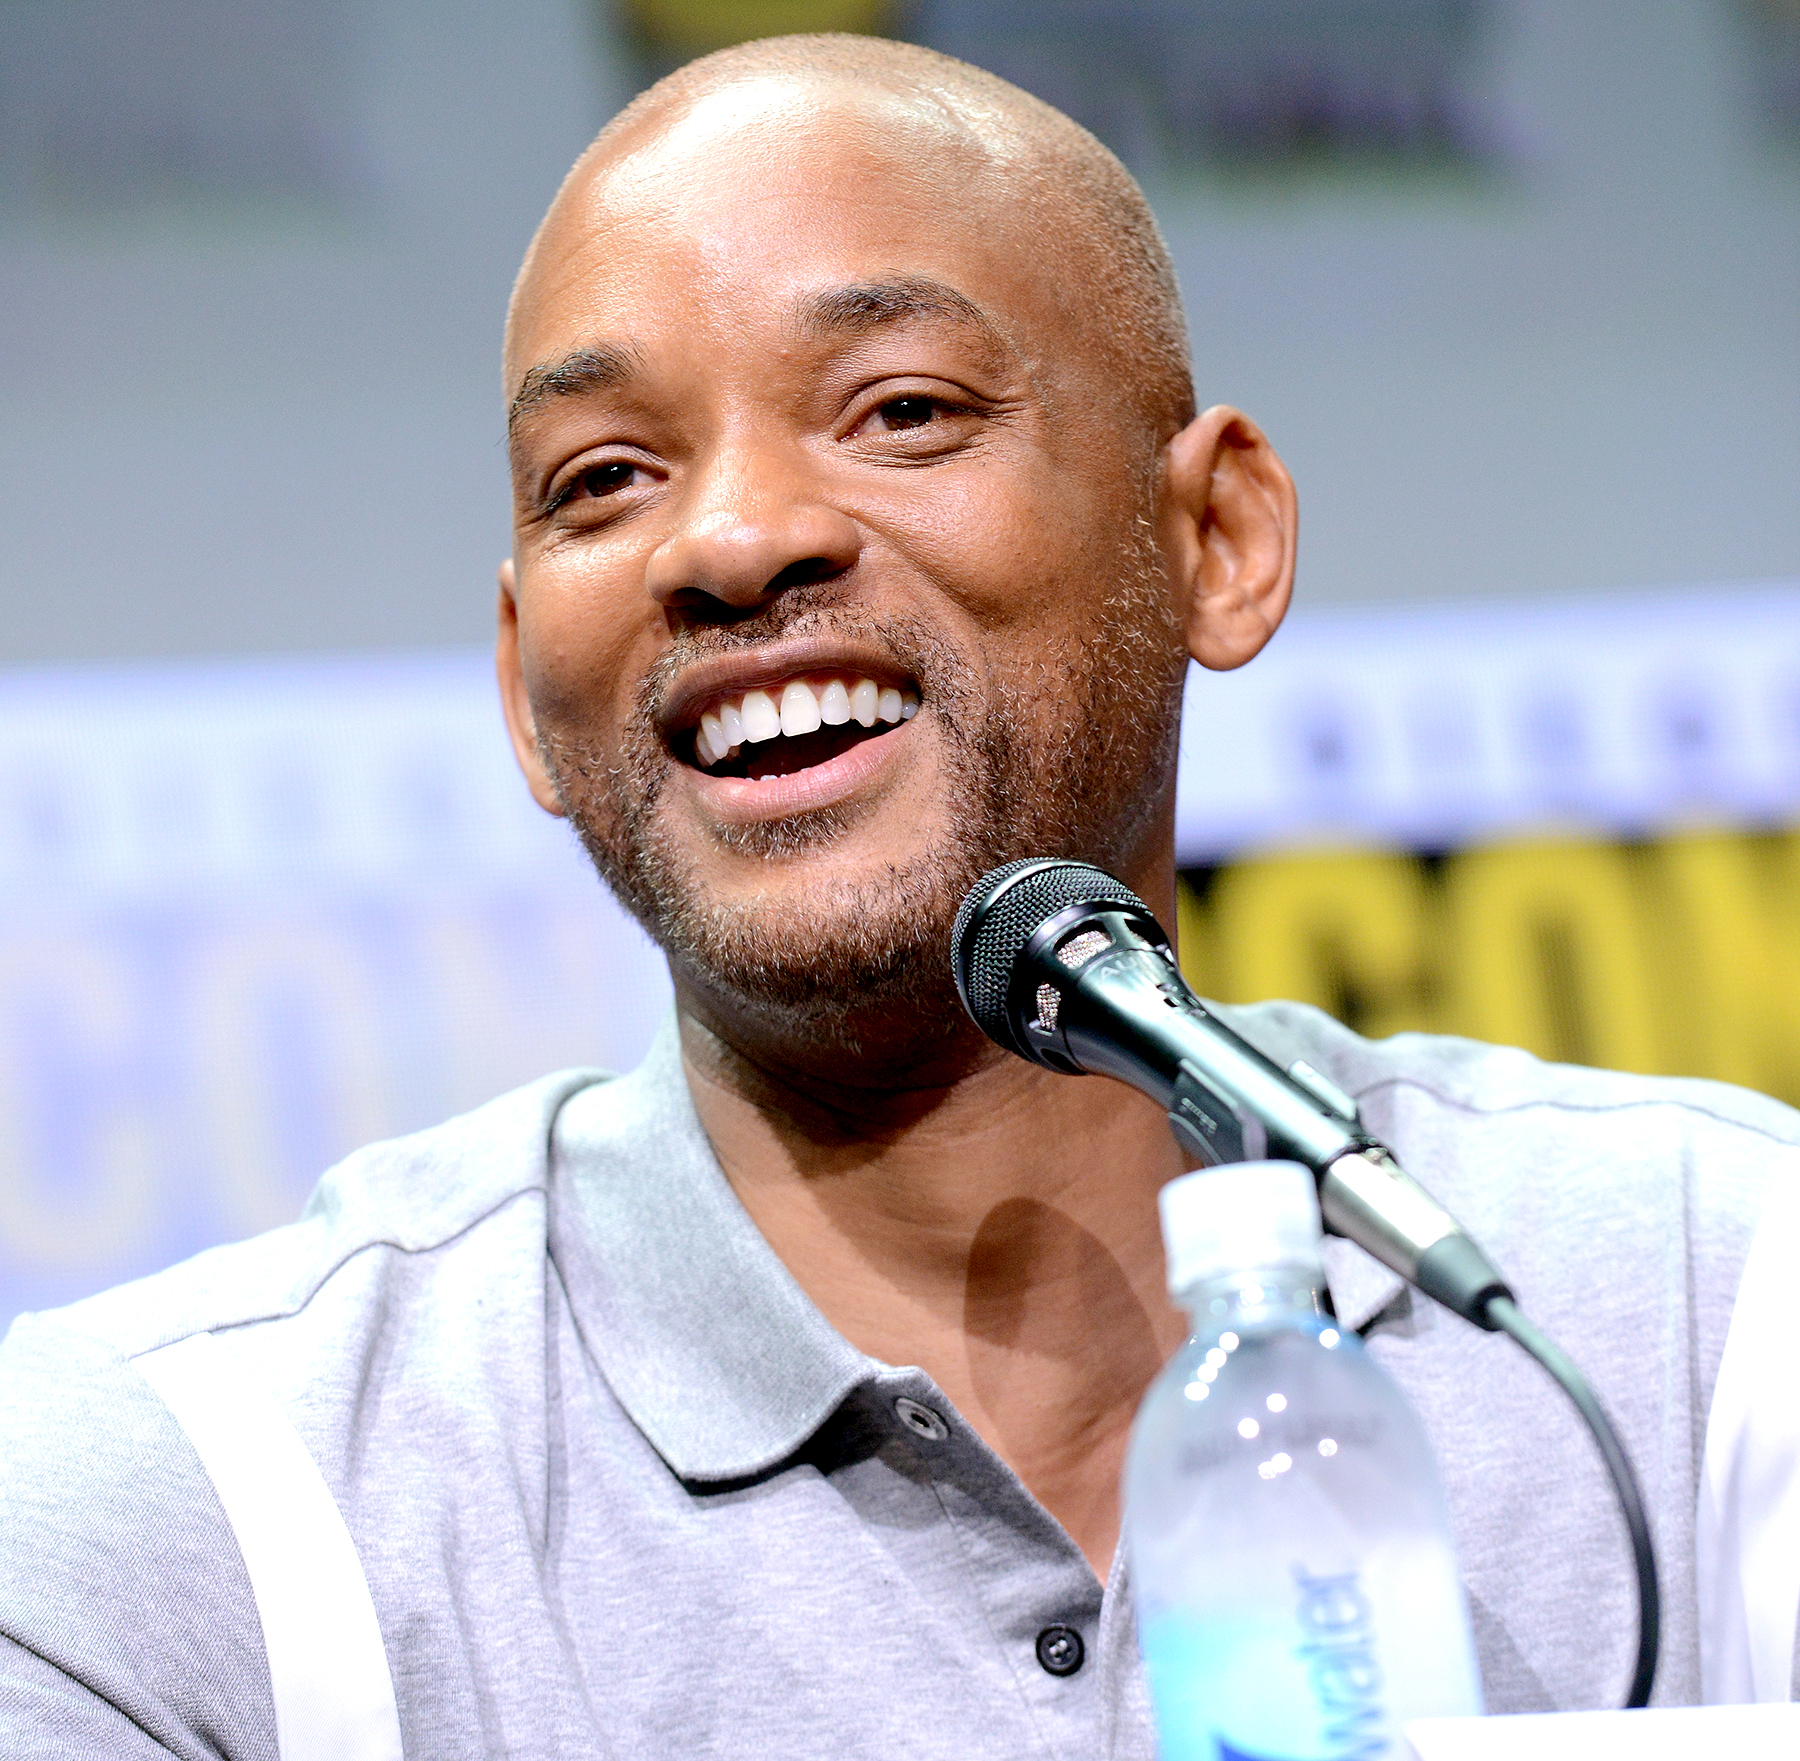 """Will Smith speaks onstage at Netflix Films: """"Bright"""" and """"Death Note"""" panel during Comic-Con International 2017 at San Diego Convention Center on July 20, 2017 in San Diego, California."""